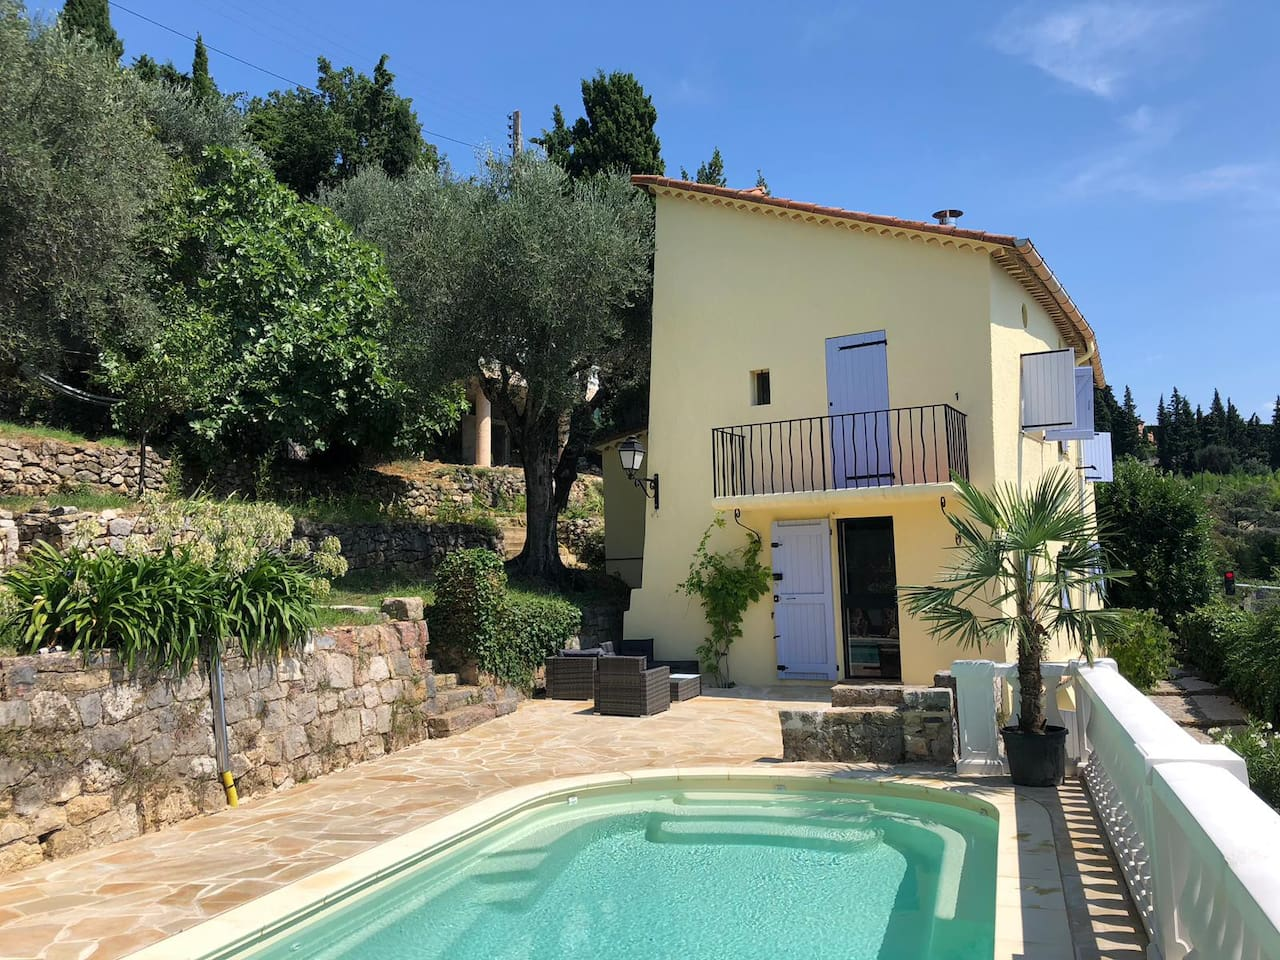 Mas, 120 m2, in Magagnosc Grasse with beatifull seaview and heated pool.